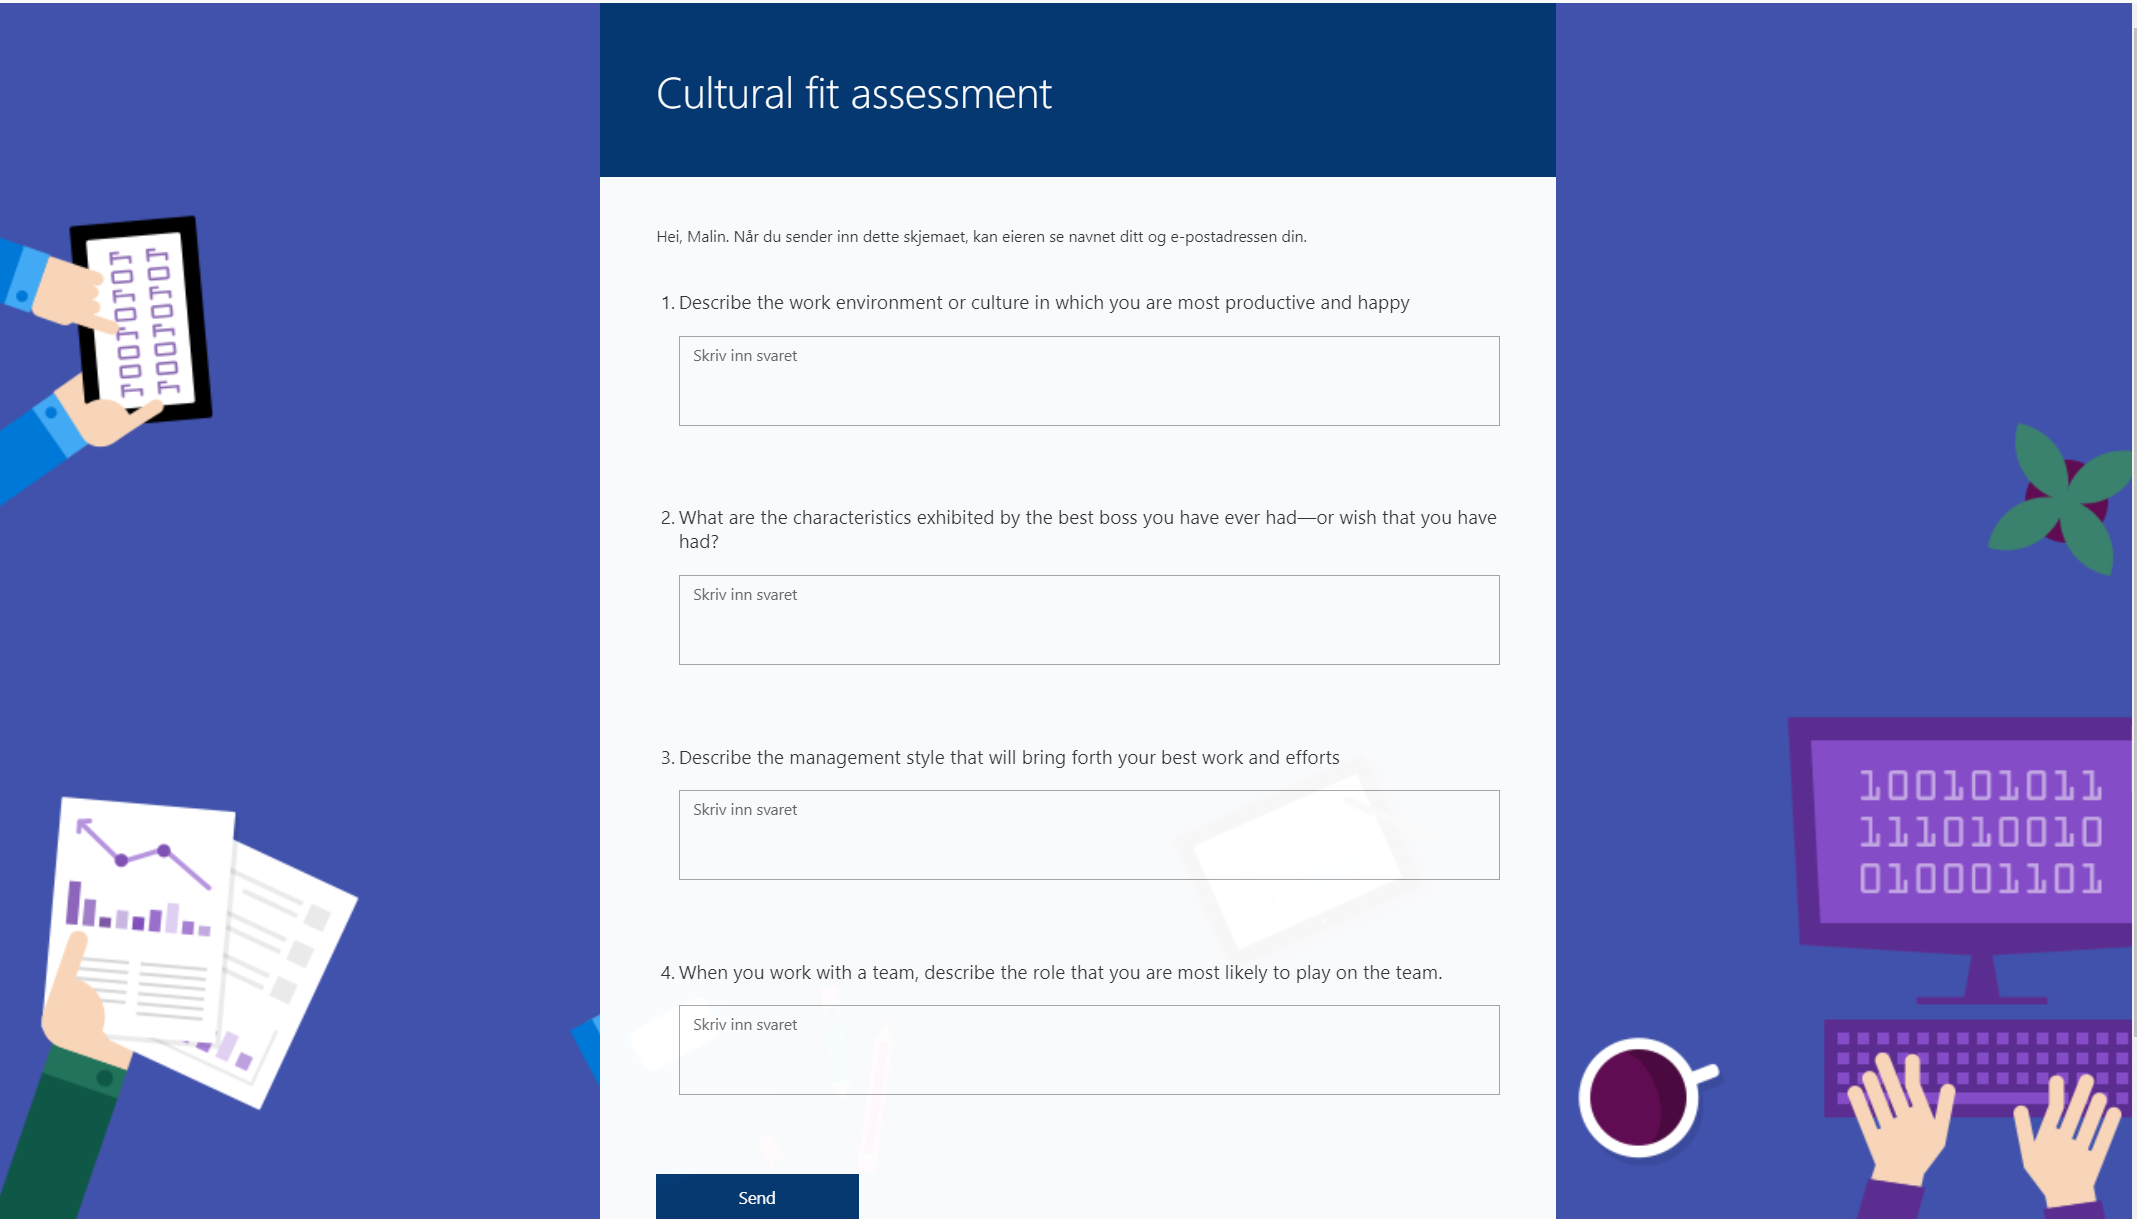 Cultural fit assessment with Microsoft Forms Pro